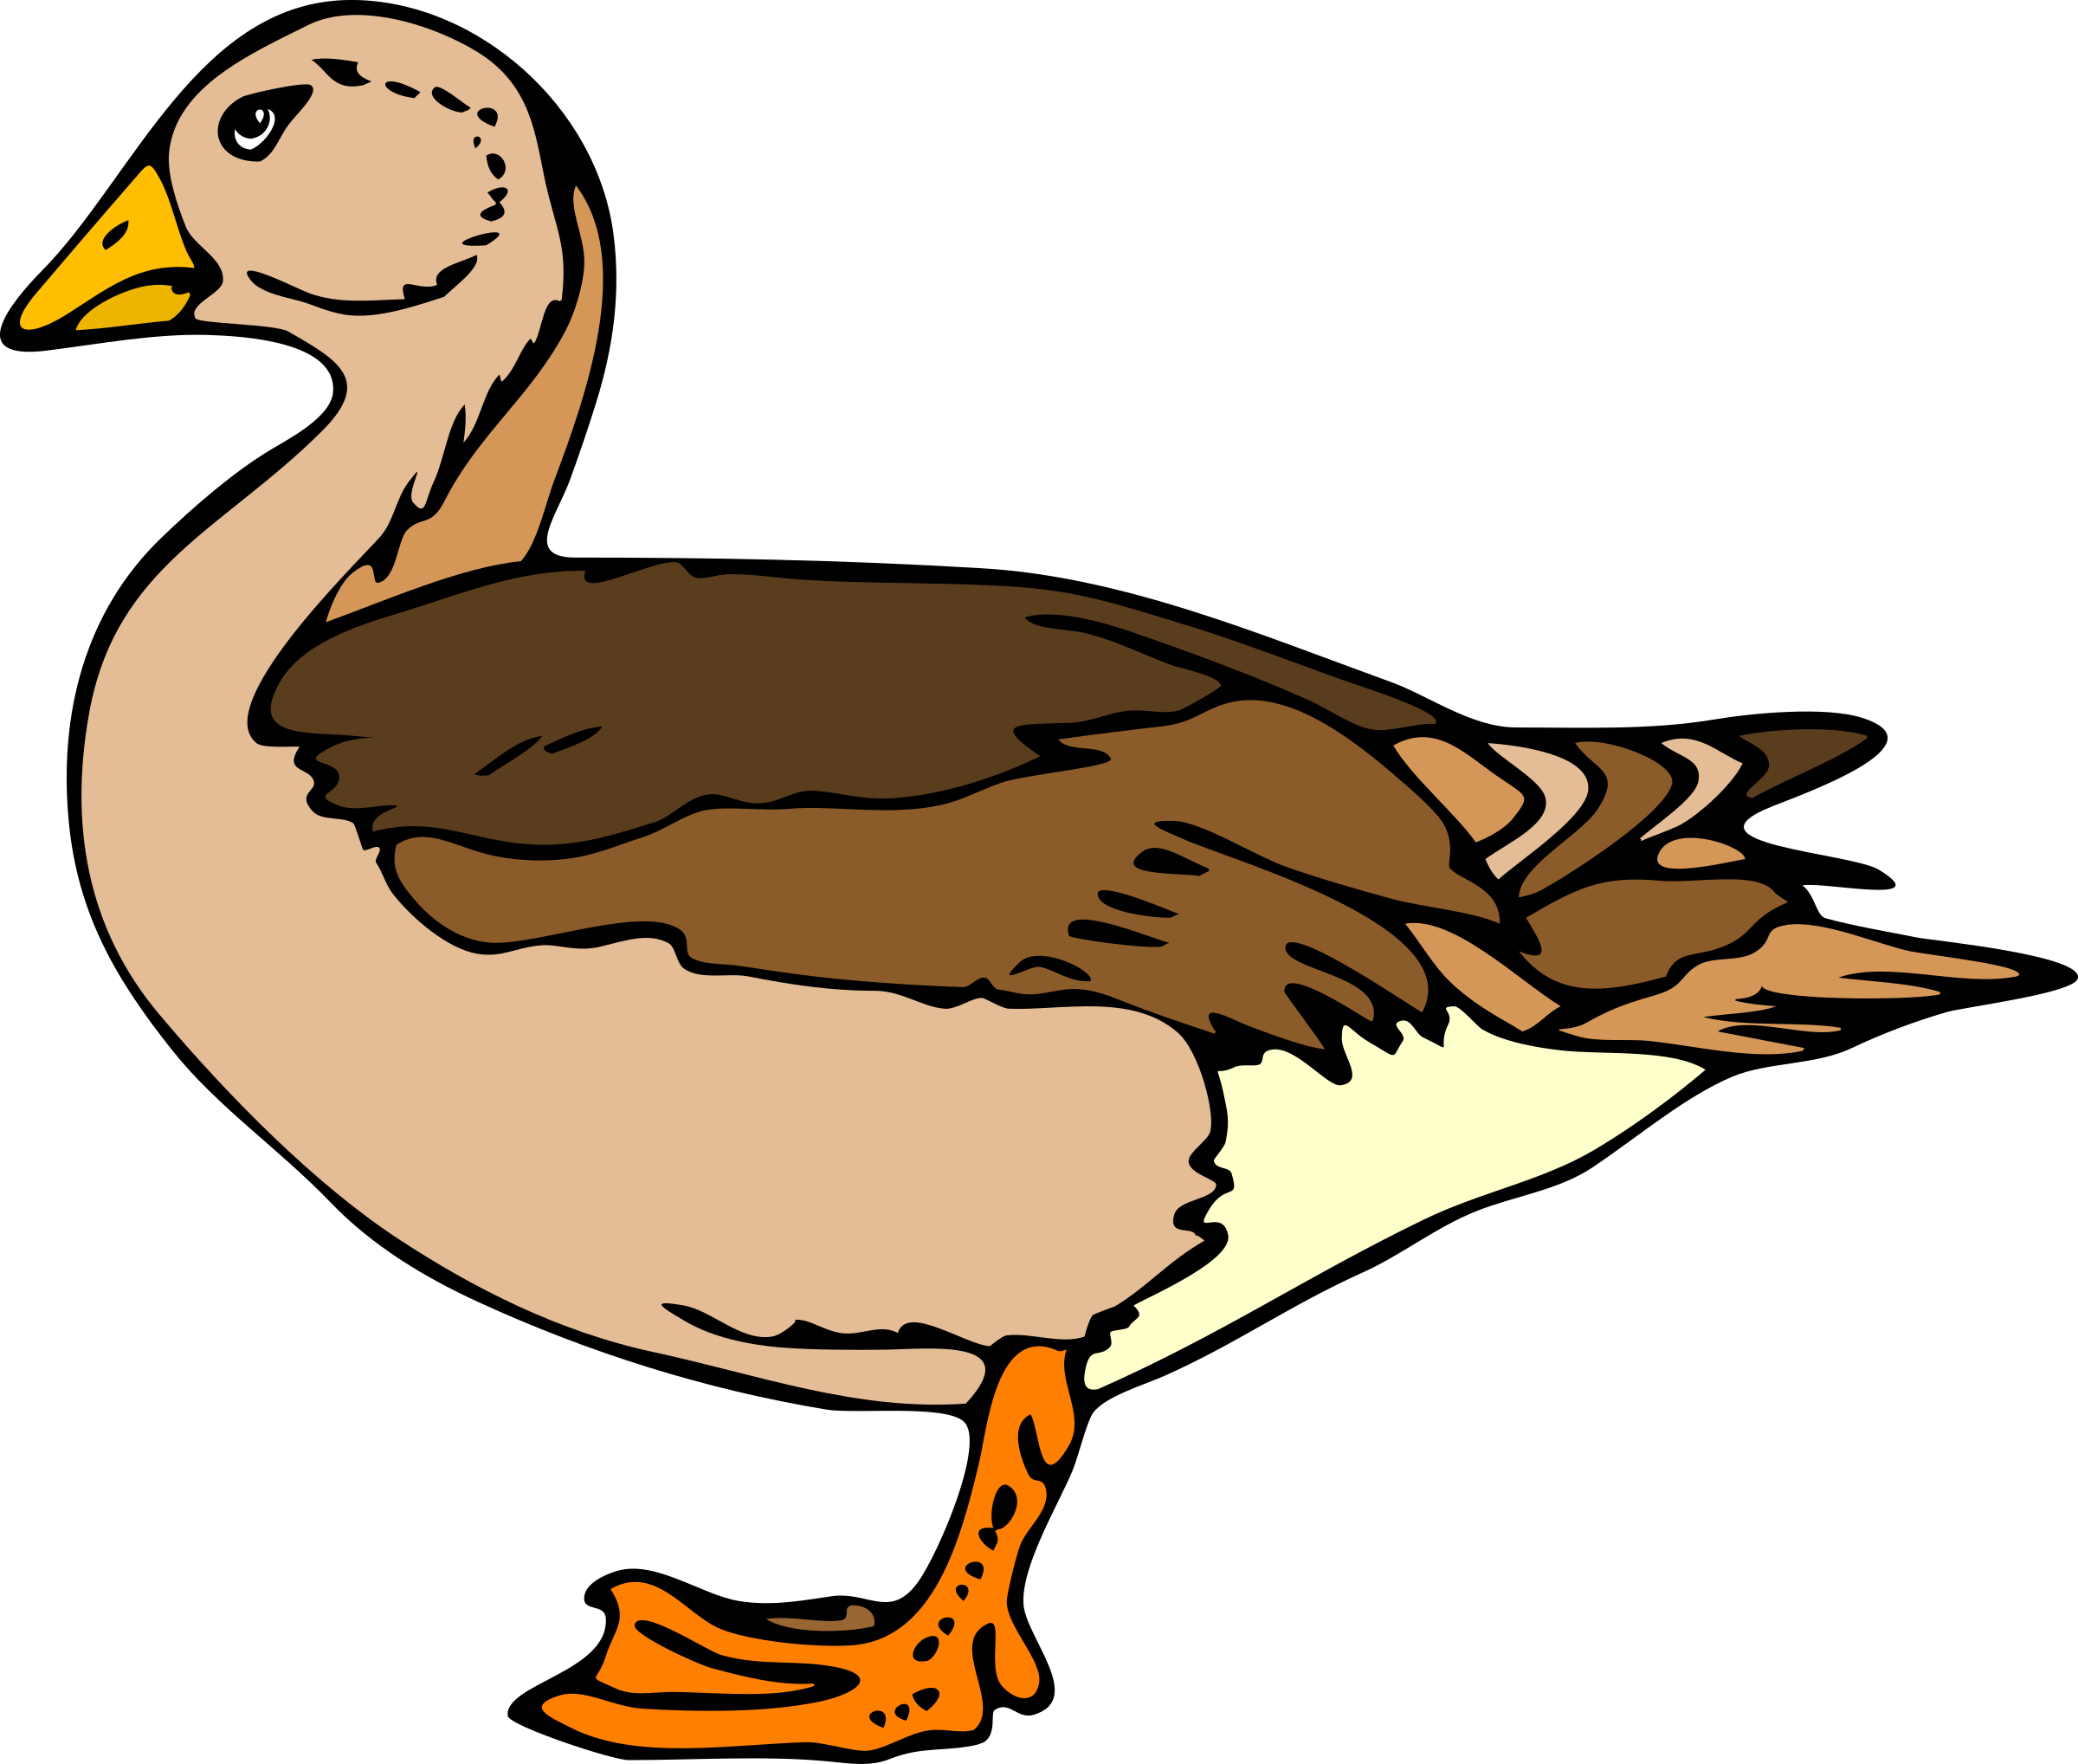 svg transparent Duck side view free. Ducks clipart